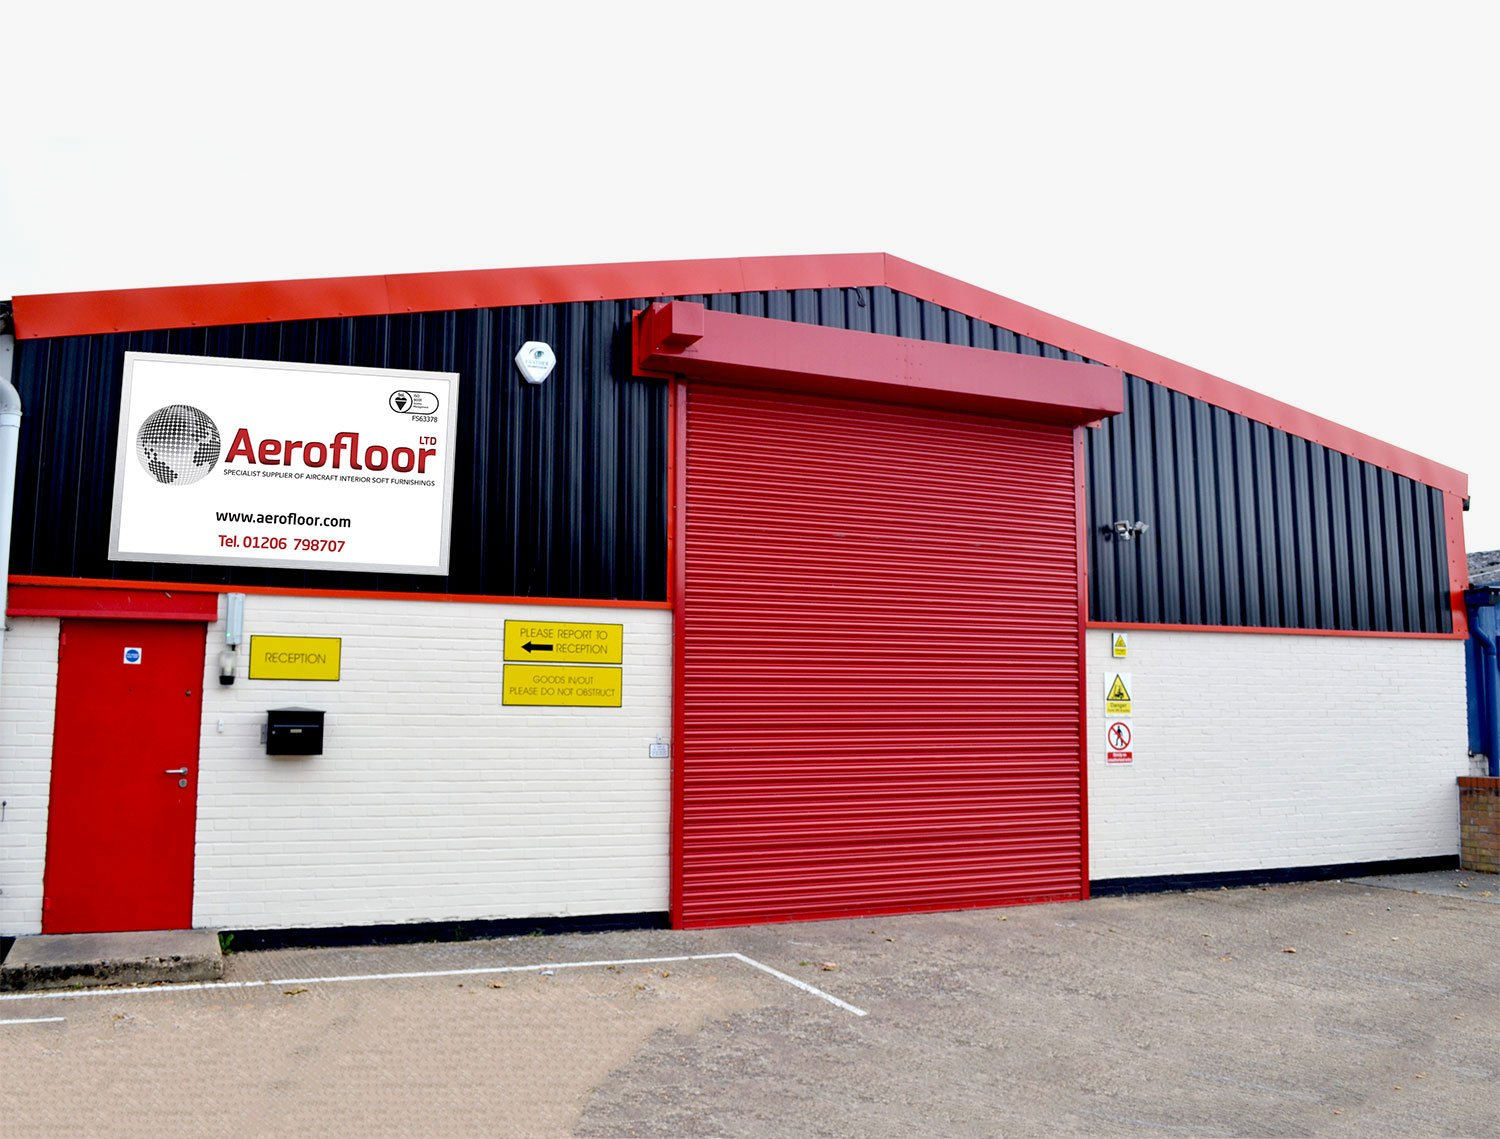 aerofloor premises